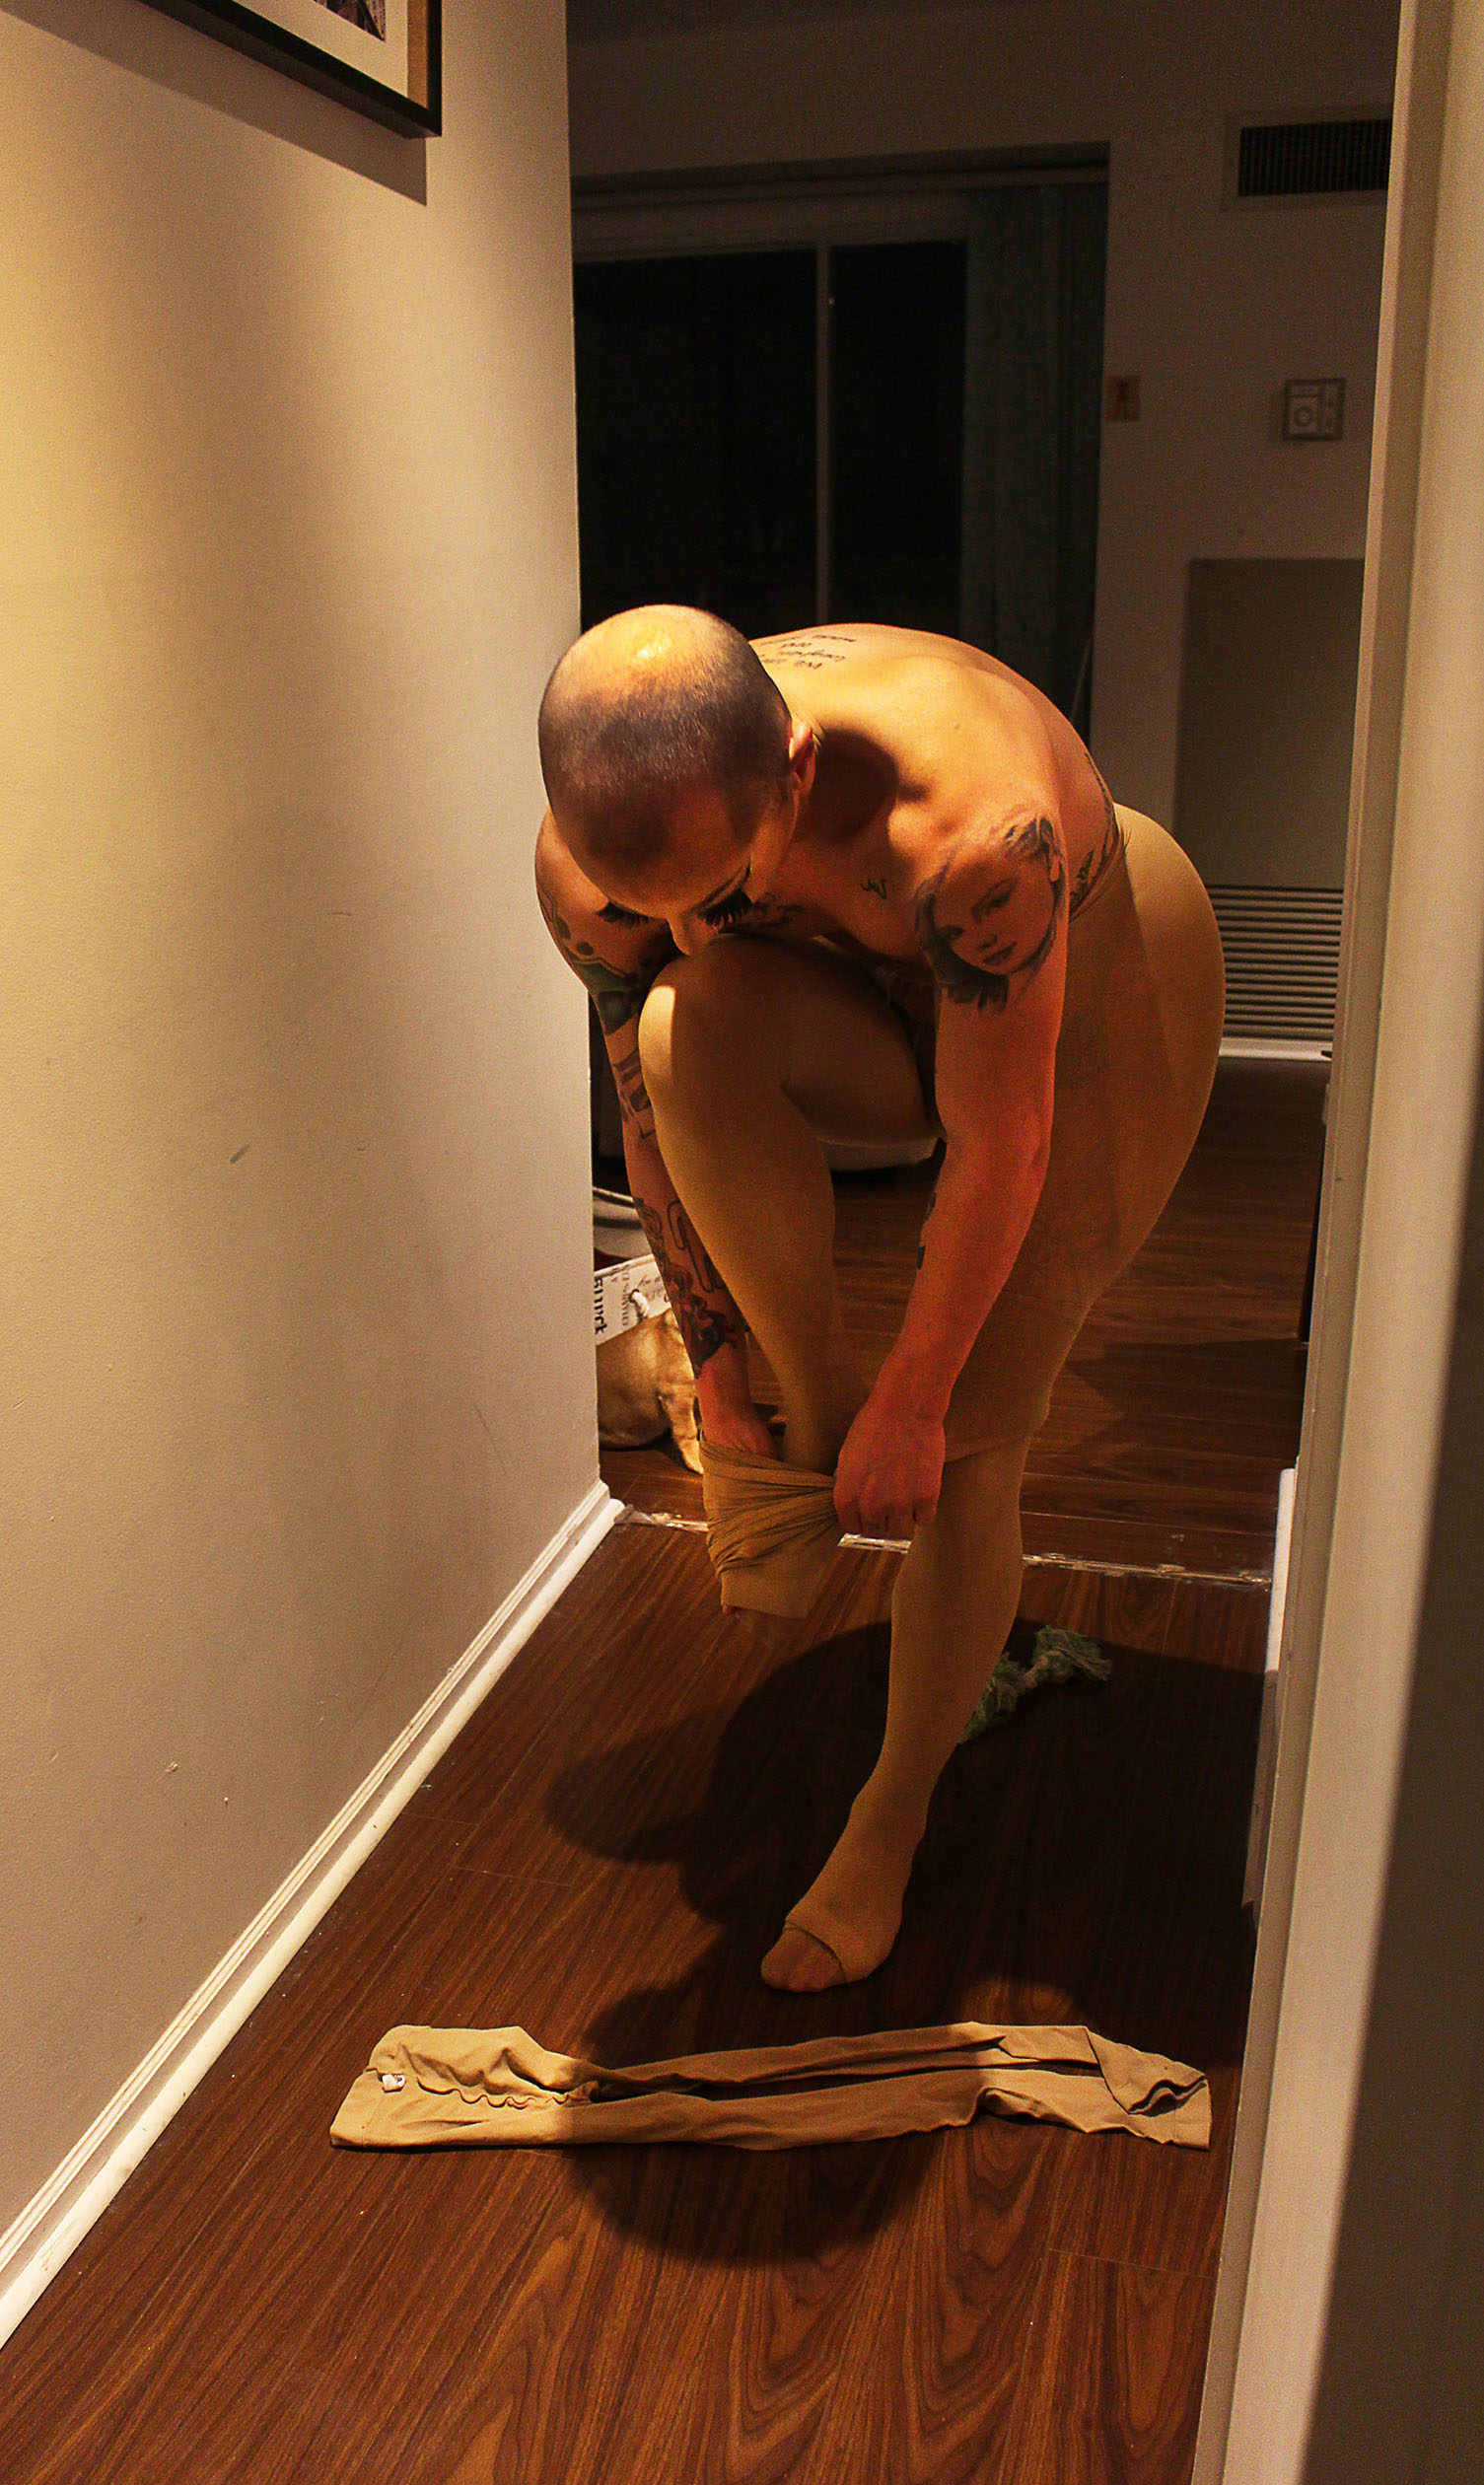 Matty Cameron getting dressed at home, in preparation for a performance.